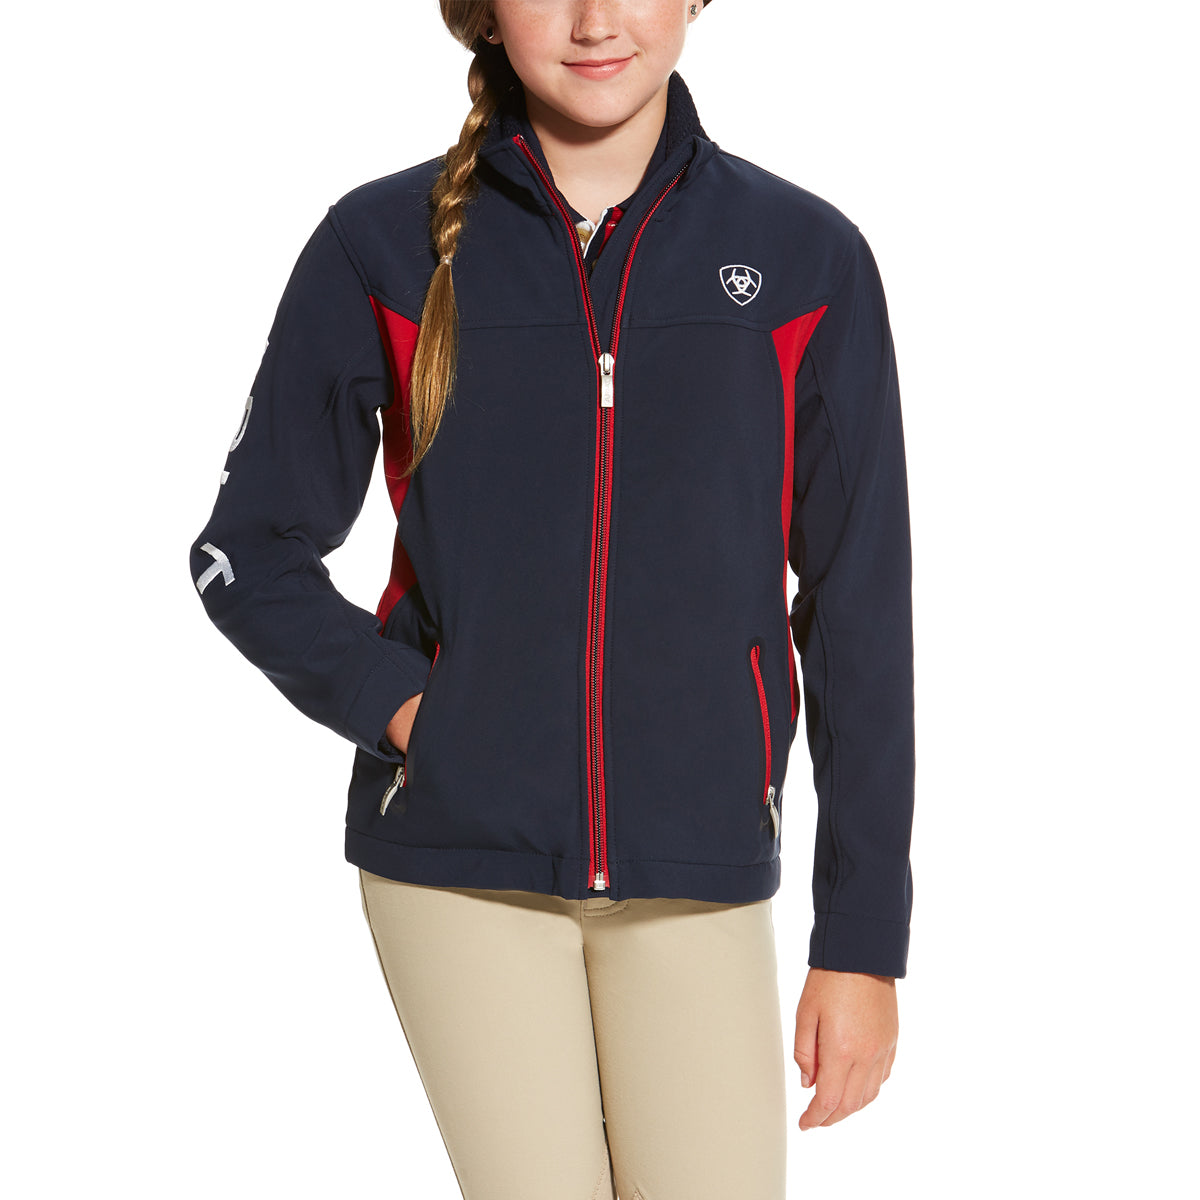 Ariat Youth New Team Softshell Jacket